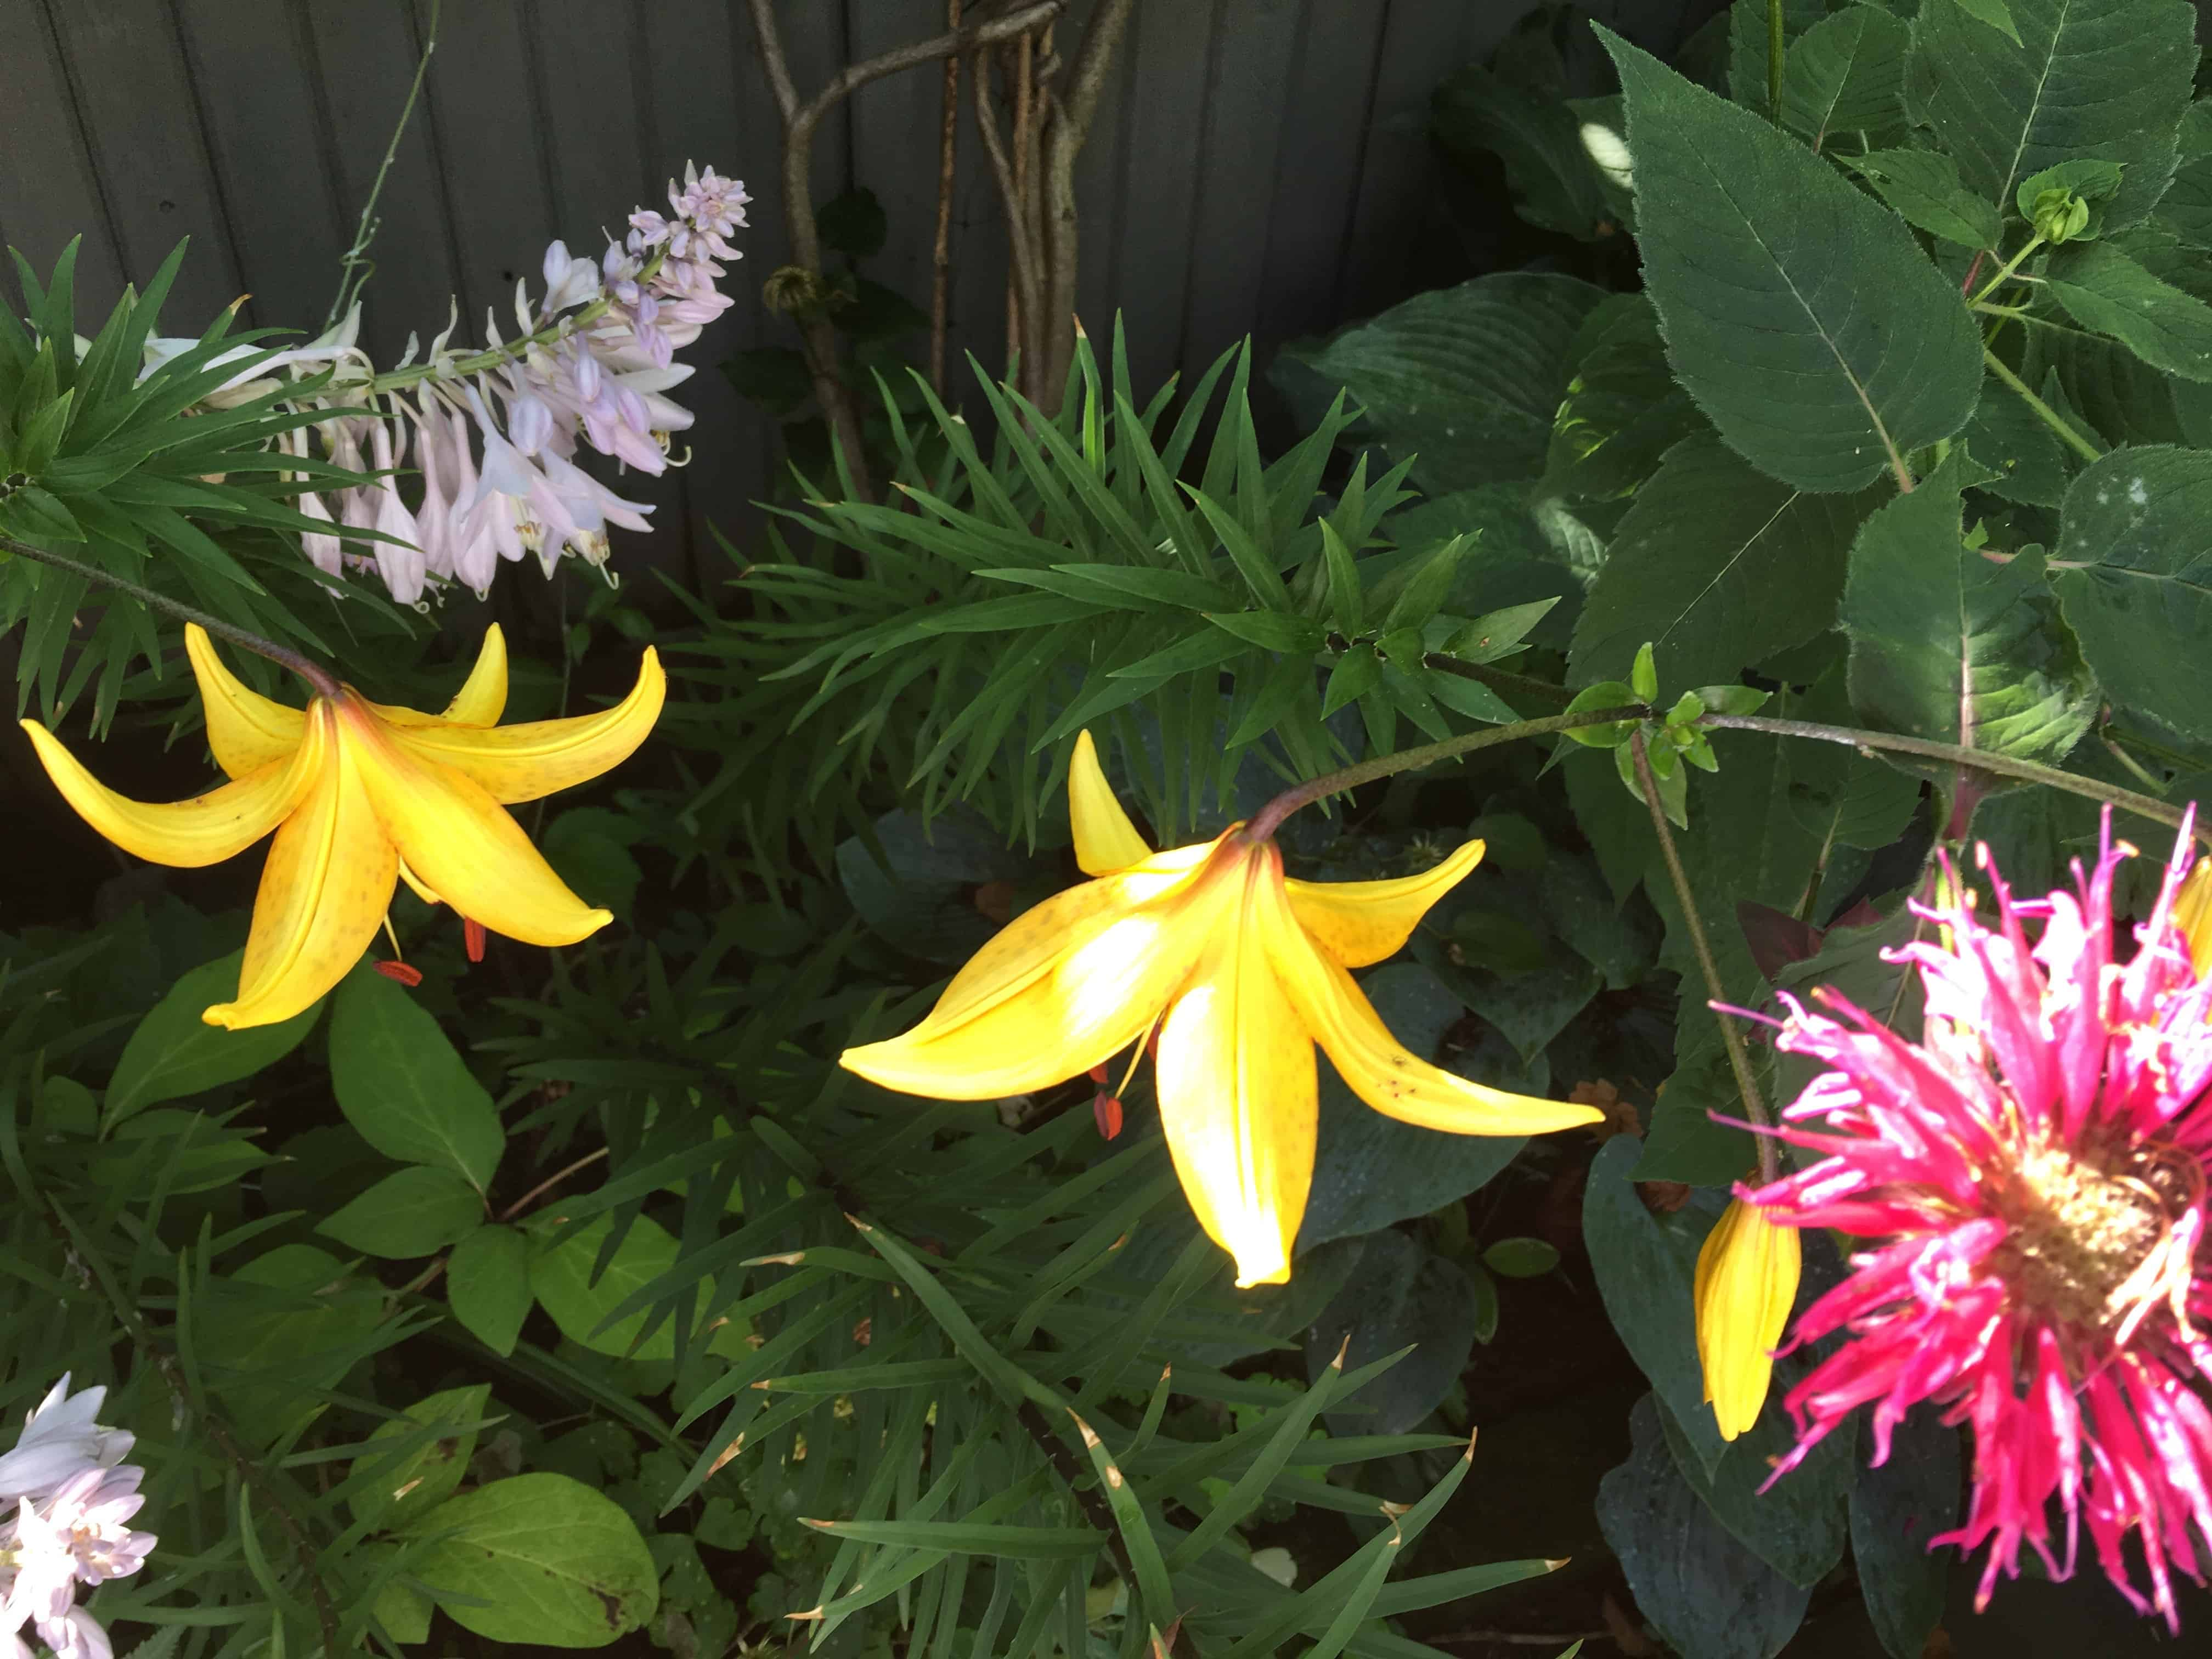 Another view of lillies in the garden.